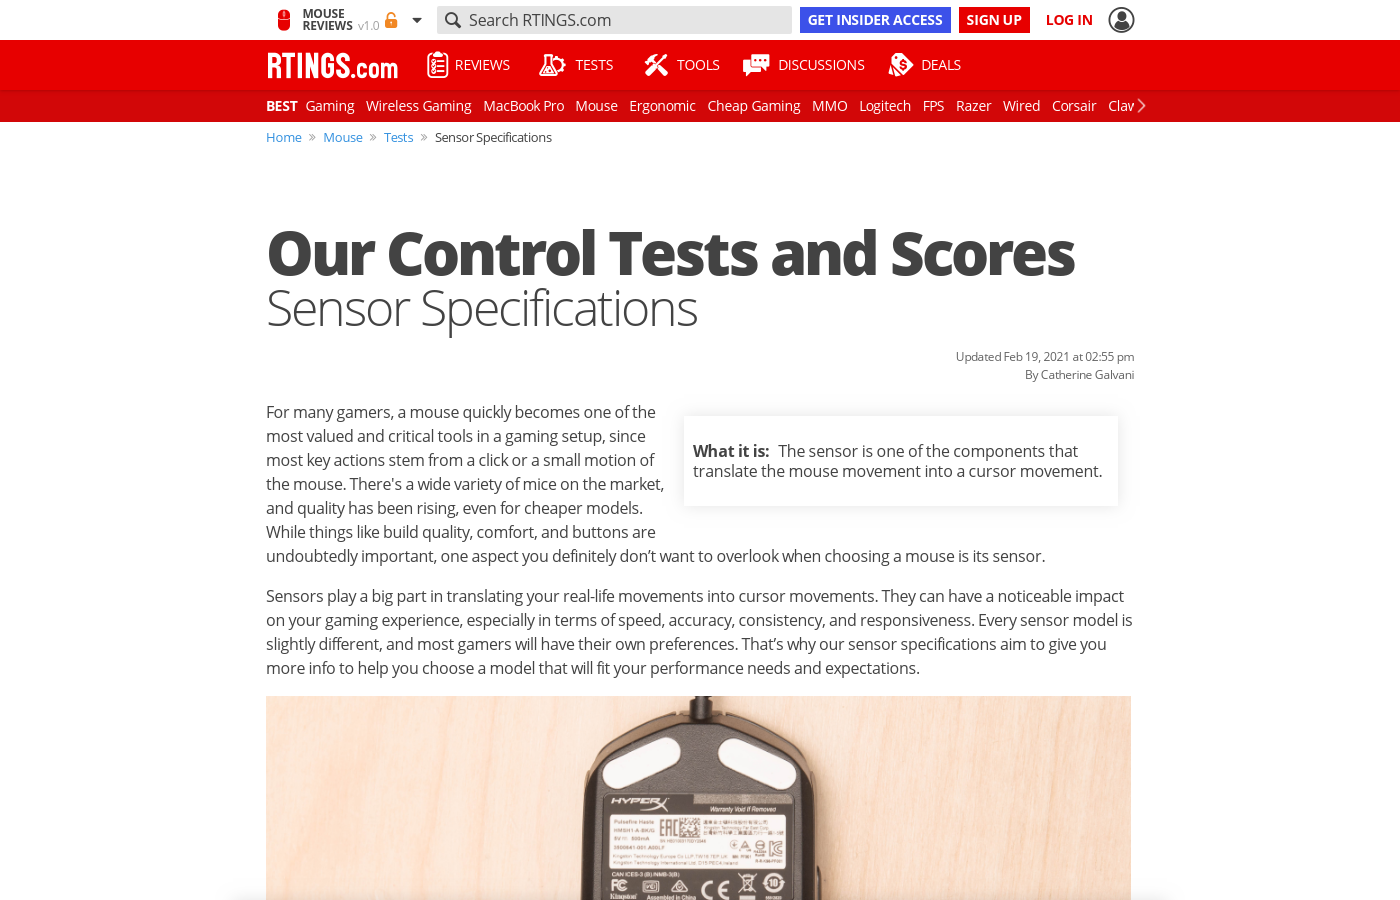 Our Control Tests and Scores: Sensor Specifications